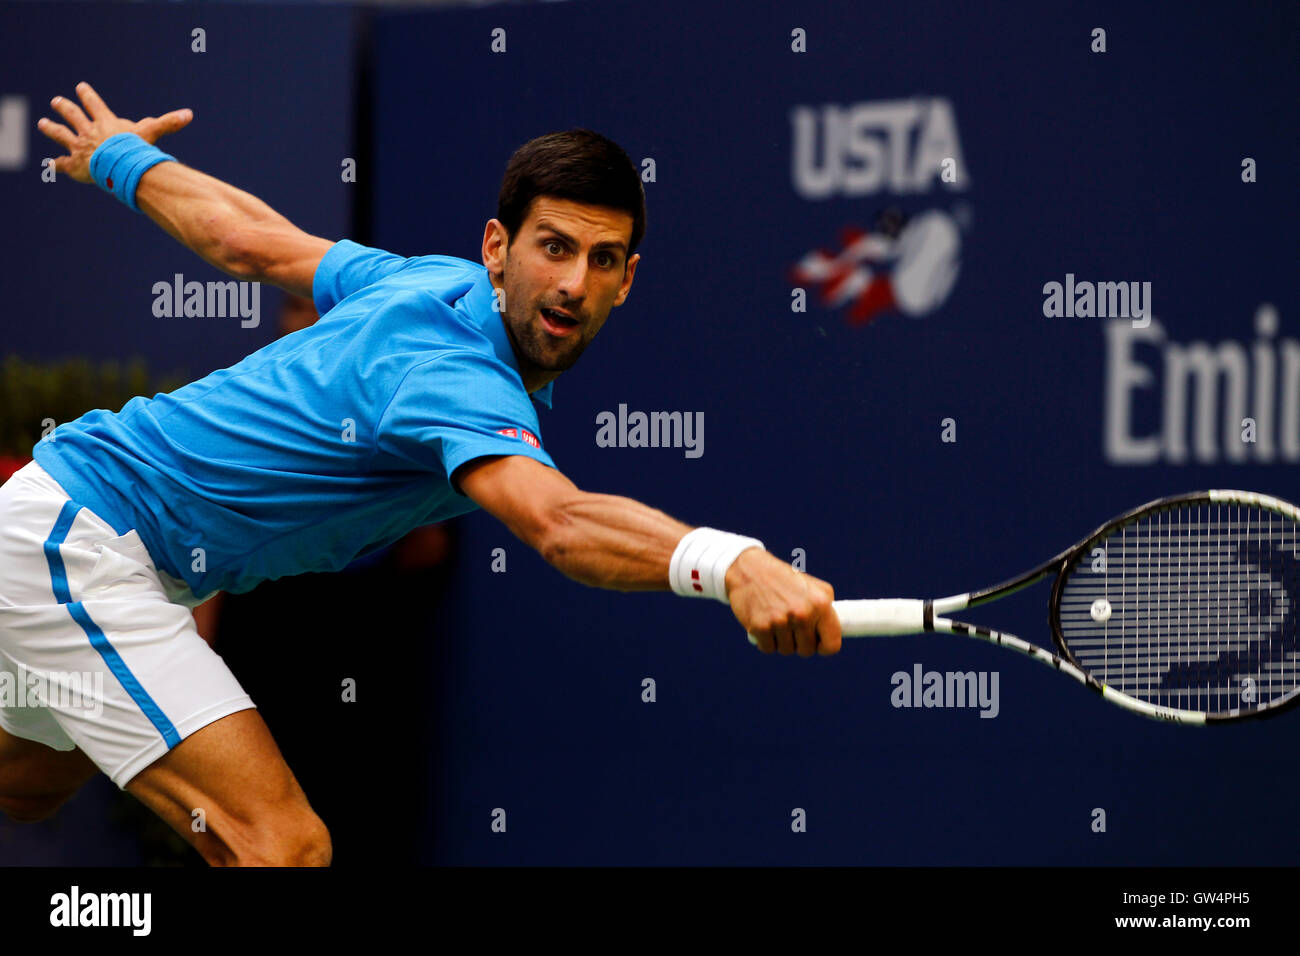 New York, United States. 11th Sep, 2016. Novak Djokovic lunges for a backhand return during the United States Open - Stock Image